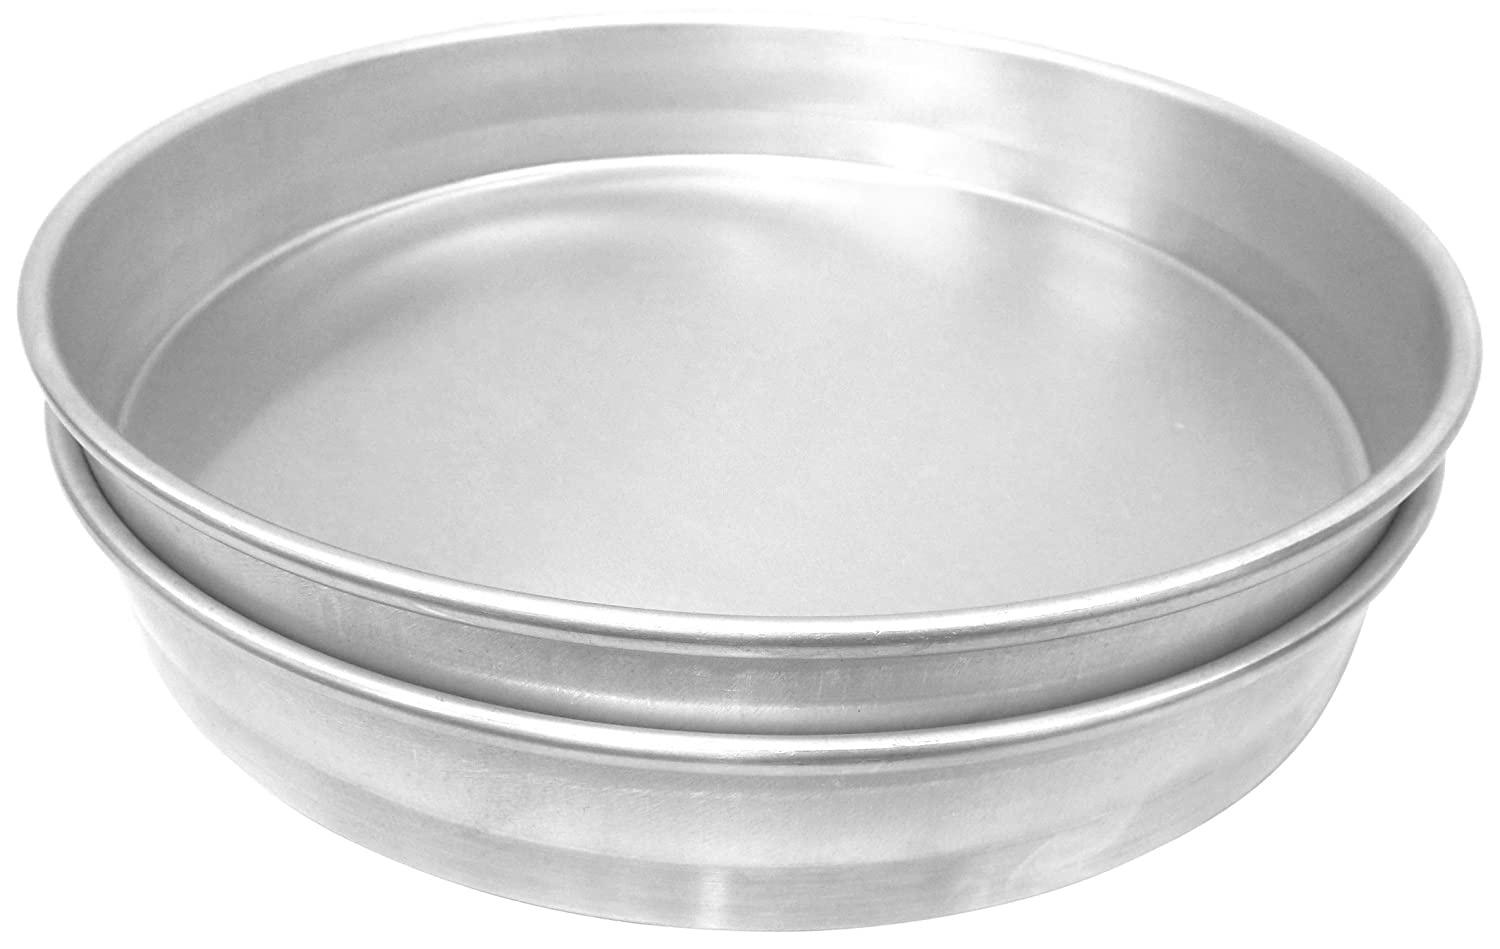 Straight Sided Allied Metal CPN9X2 Hard Aluminum Nesting Pizza//Cake Pan 9 by 2-Inch Allied Metal Spinning Corporation